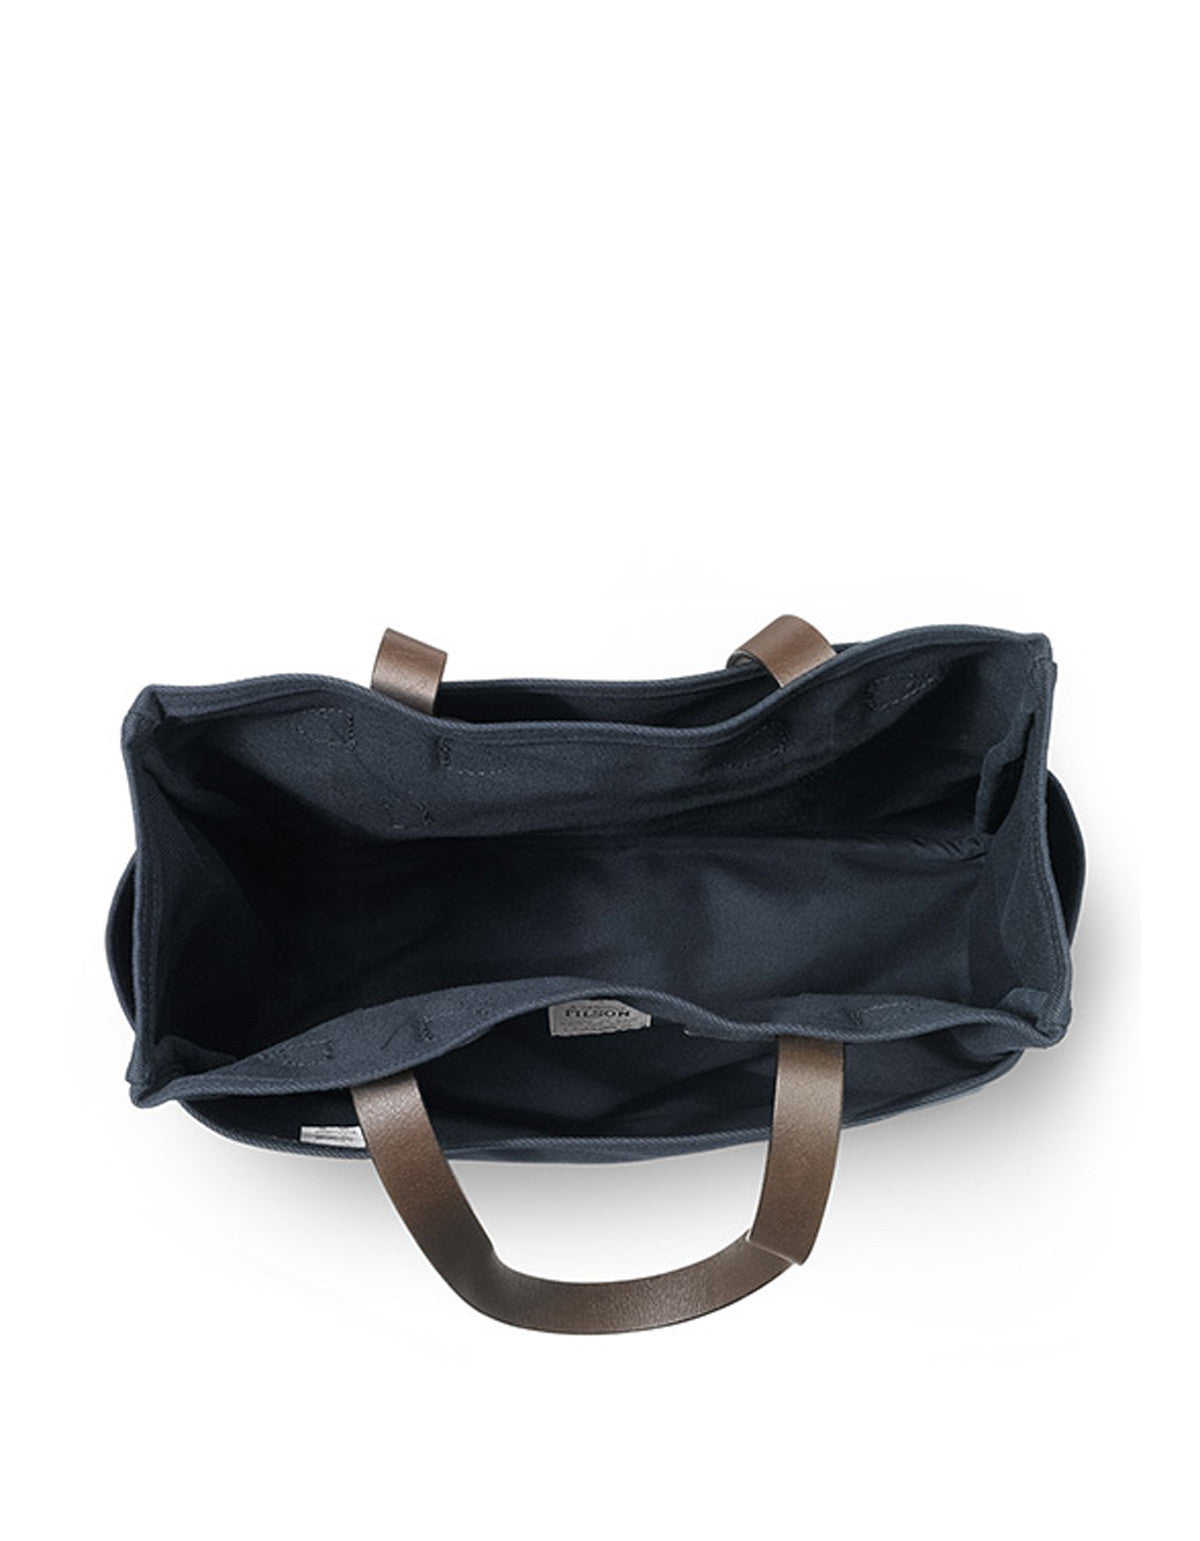 Filson Tote Bag Without Zipper Navy - Still Life - 3